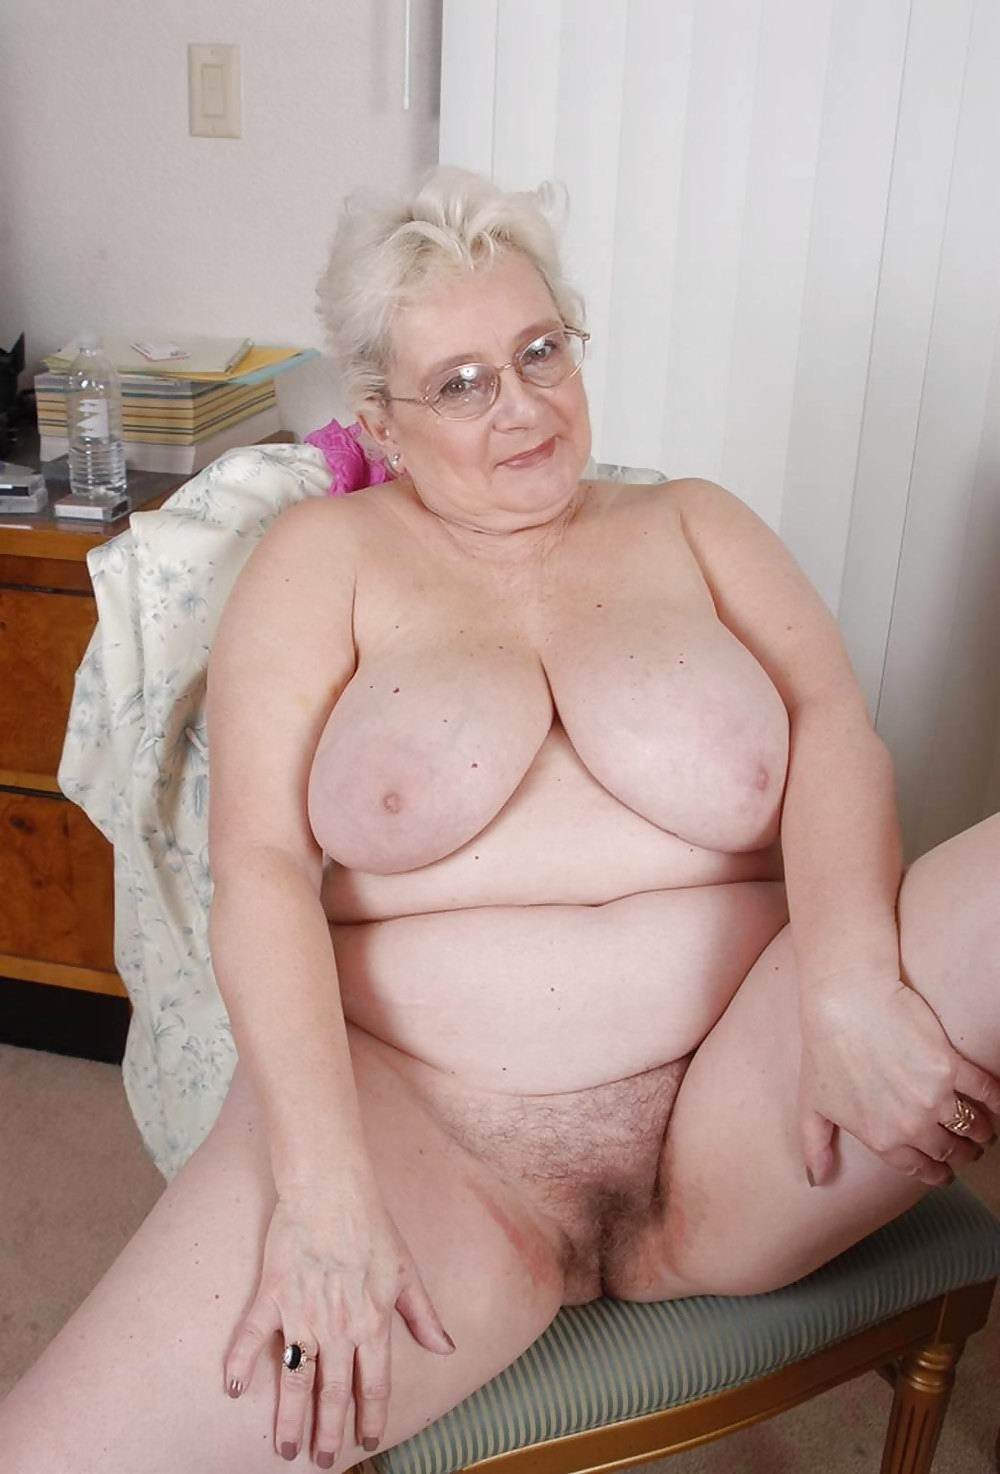 Not mature naked older nudes remarkable